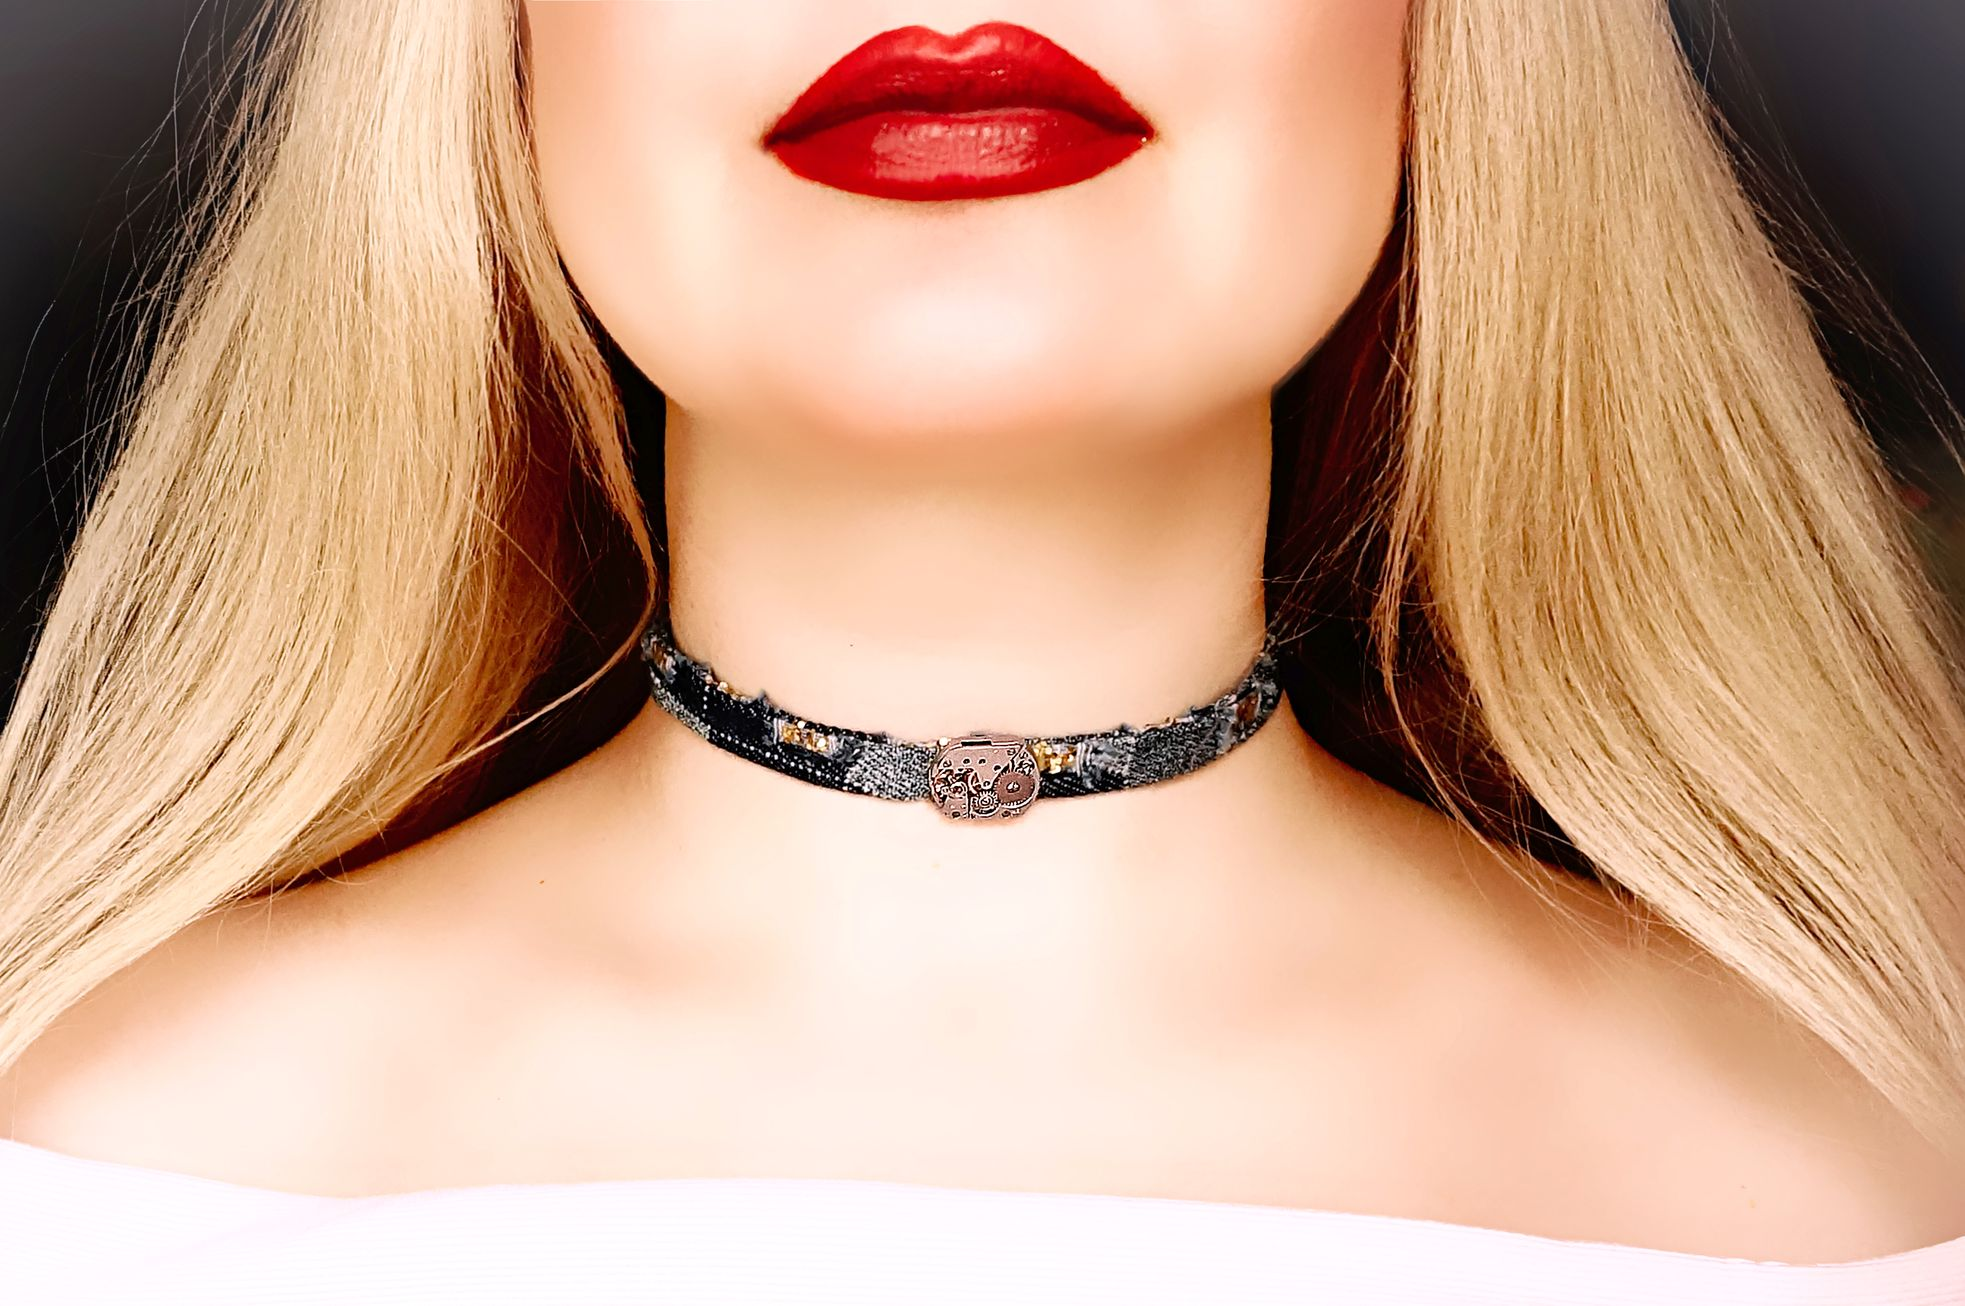 Slave submissive day collar choker bdsm